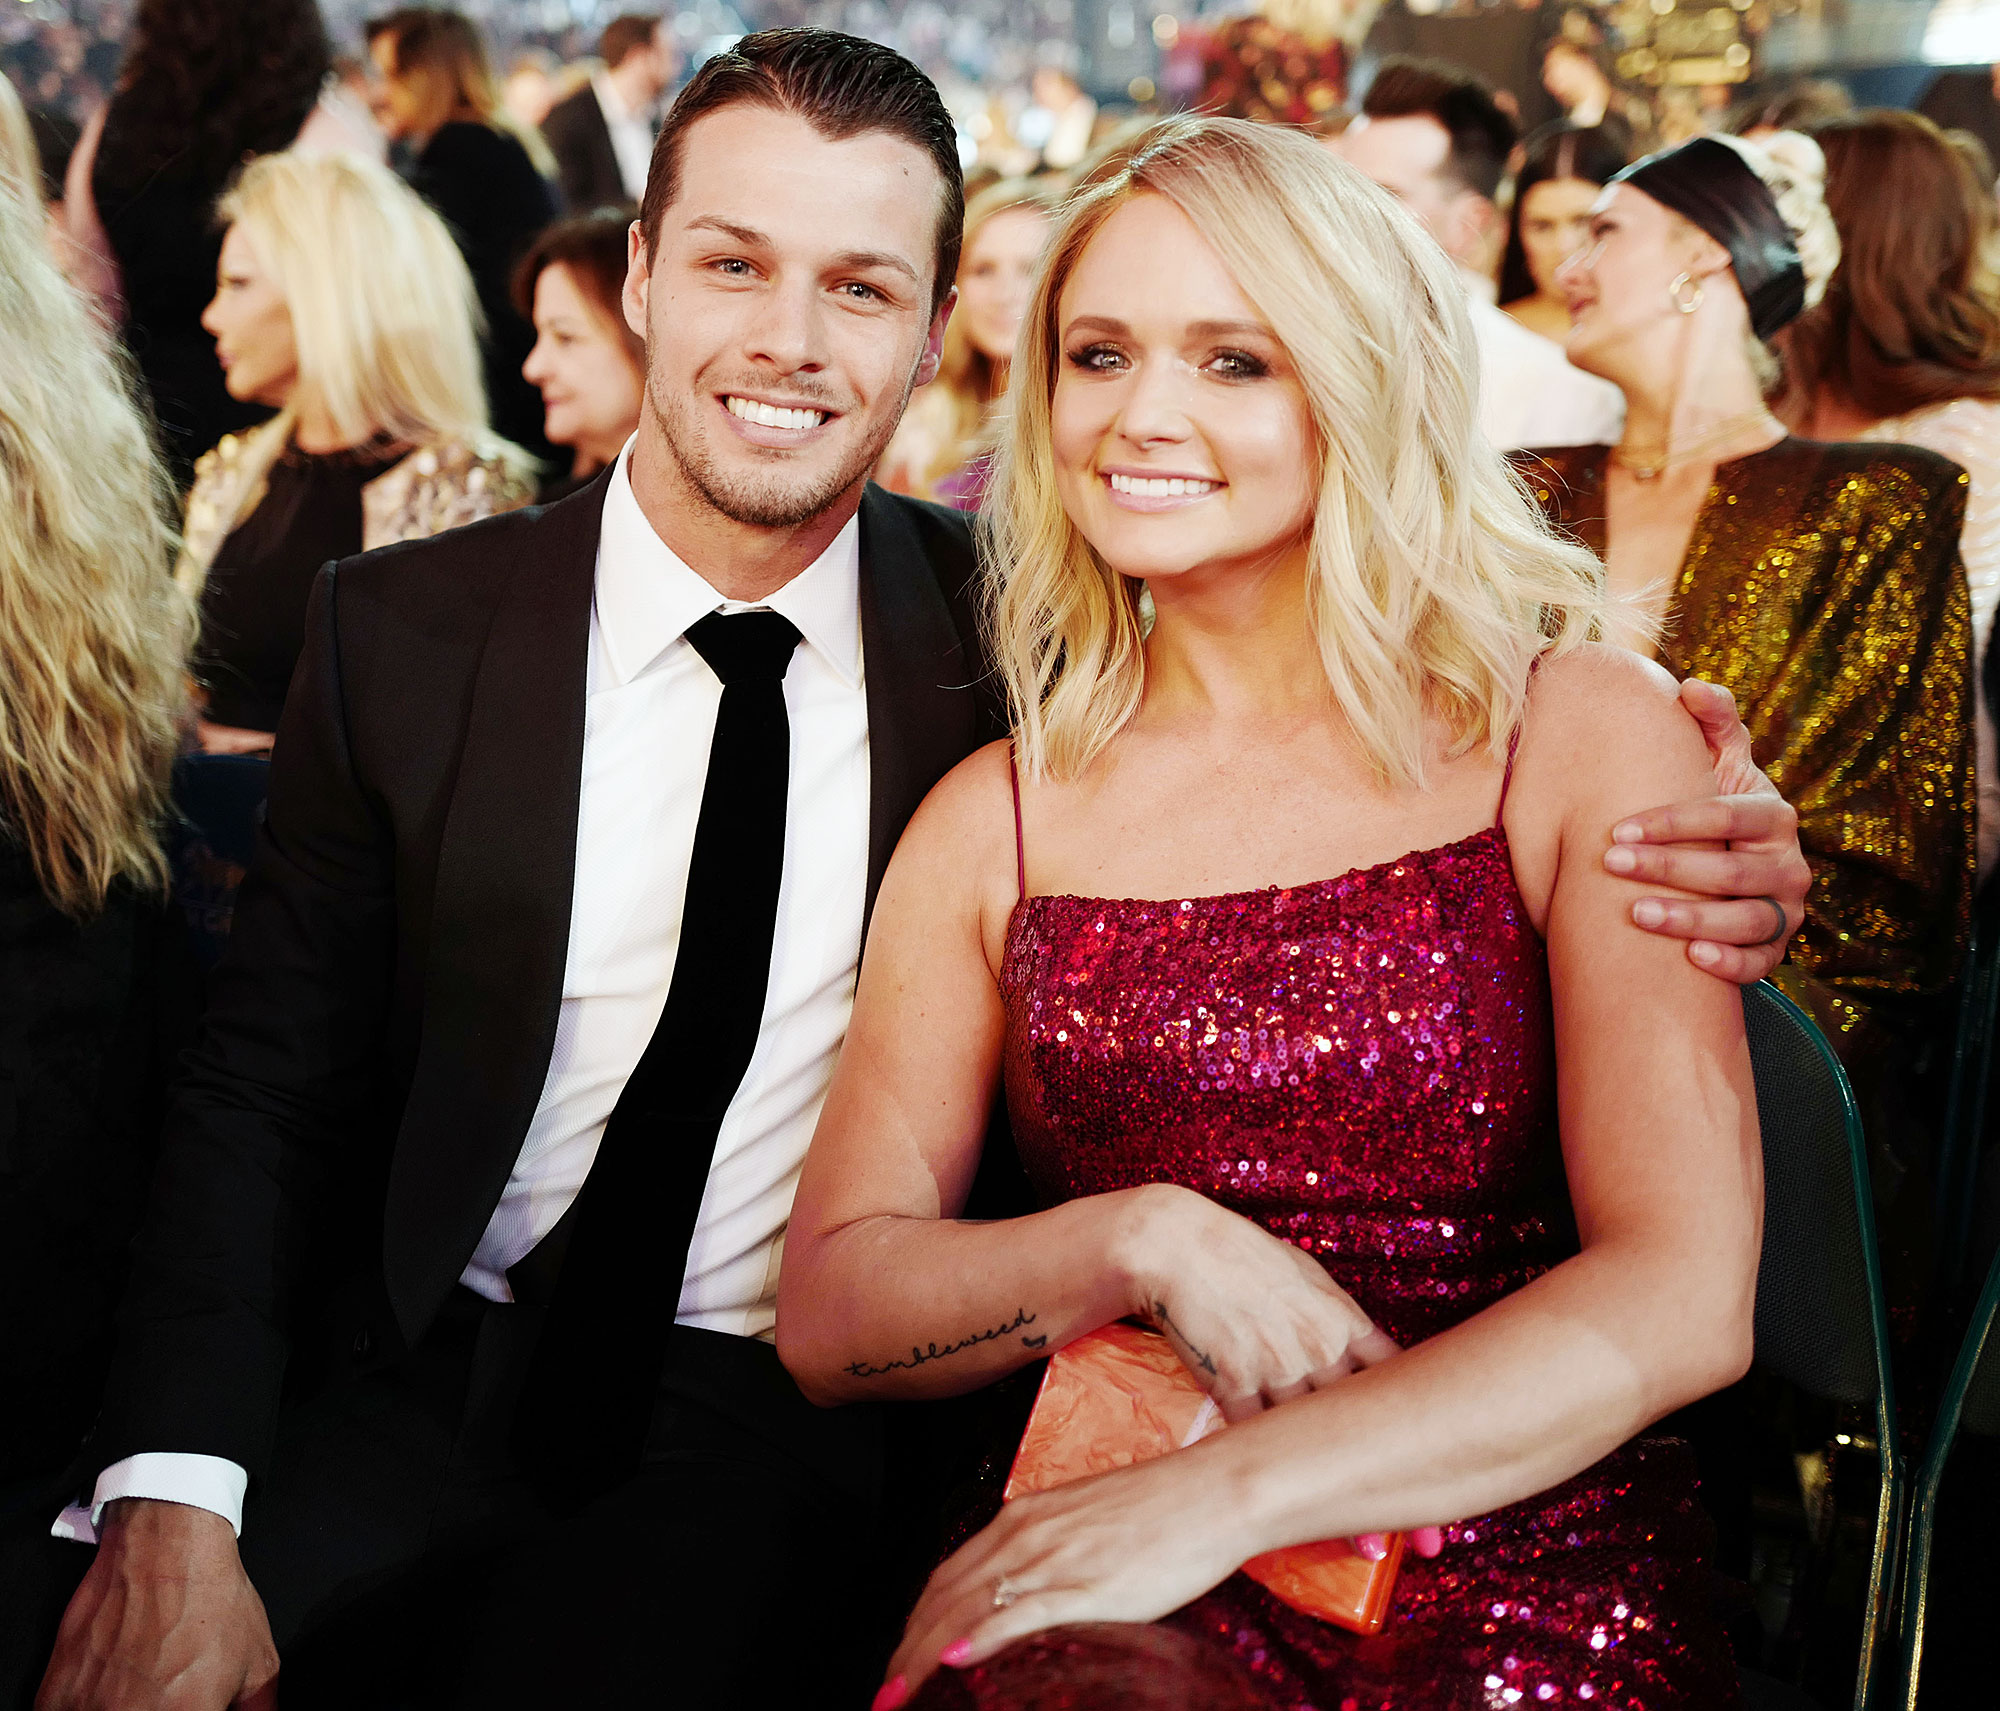 Brendan McLoughlin and Miranda Lambert attend the 2019 bAcademy Of Country Music Awards Robin Roberts Says Brendan McLoughlin Is So Happy After Miranda Lambert